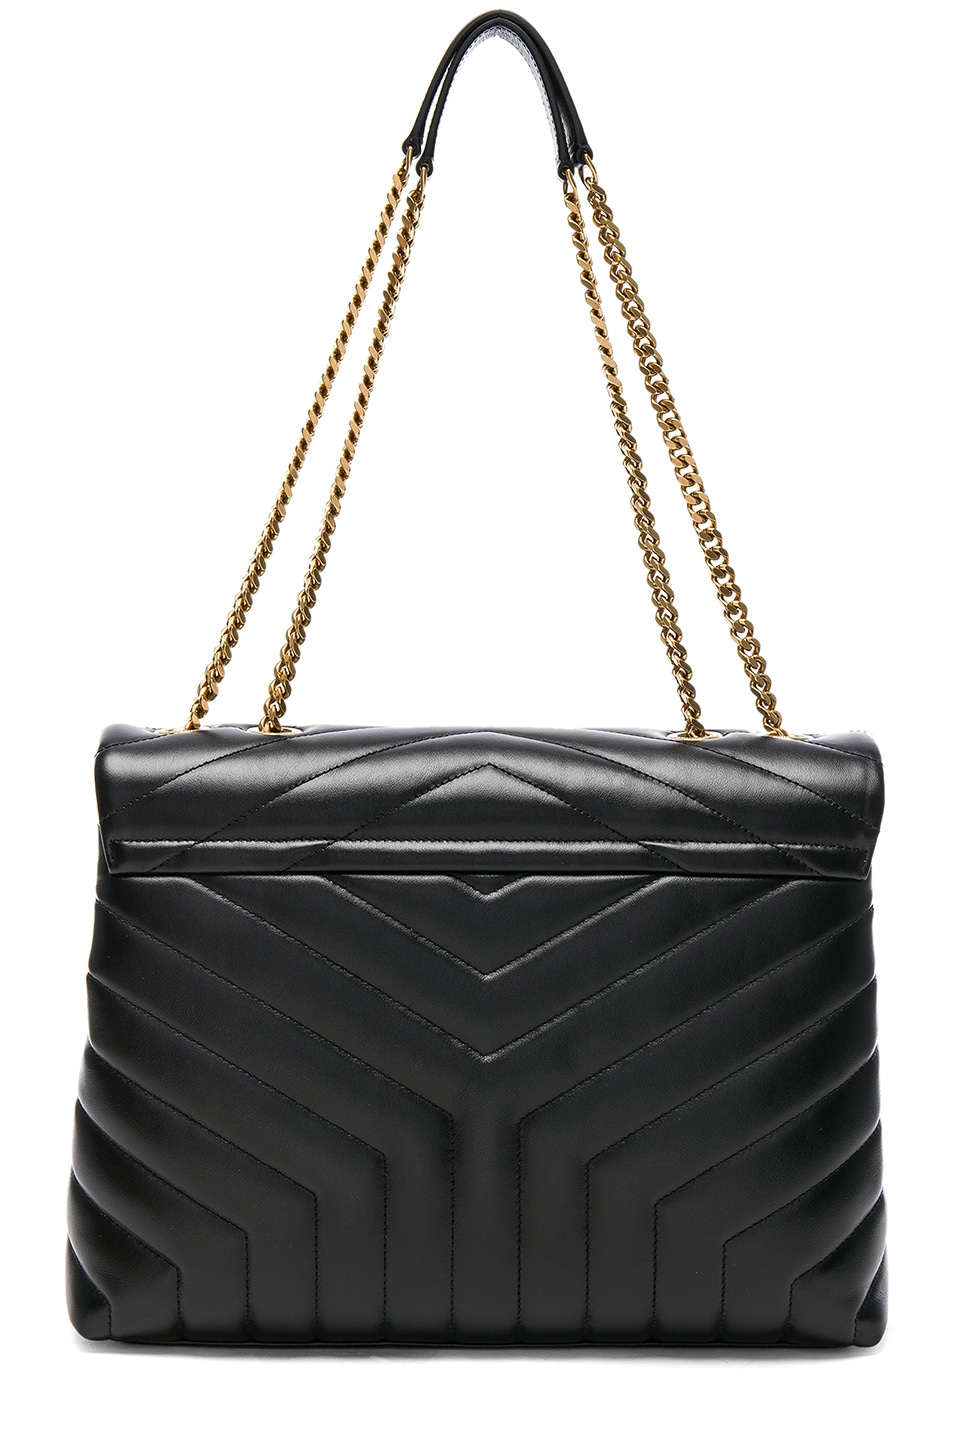 Image 3 of Saint Laurent Medium Supple Monogramme Loulou Chain Bag in Black & Gold